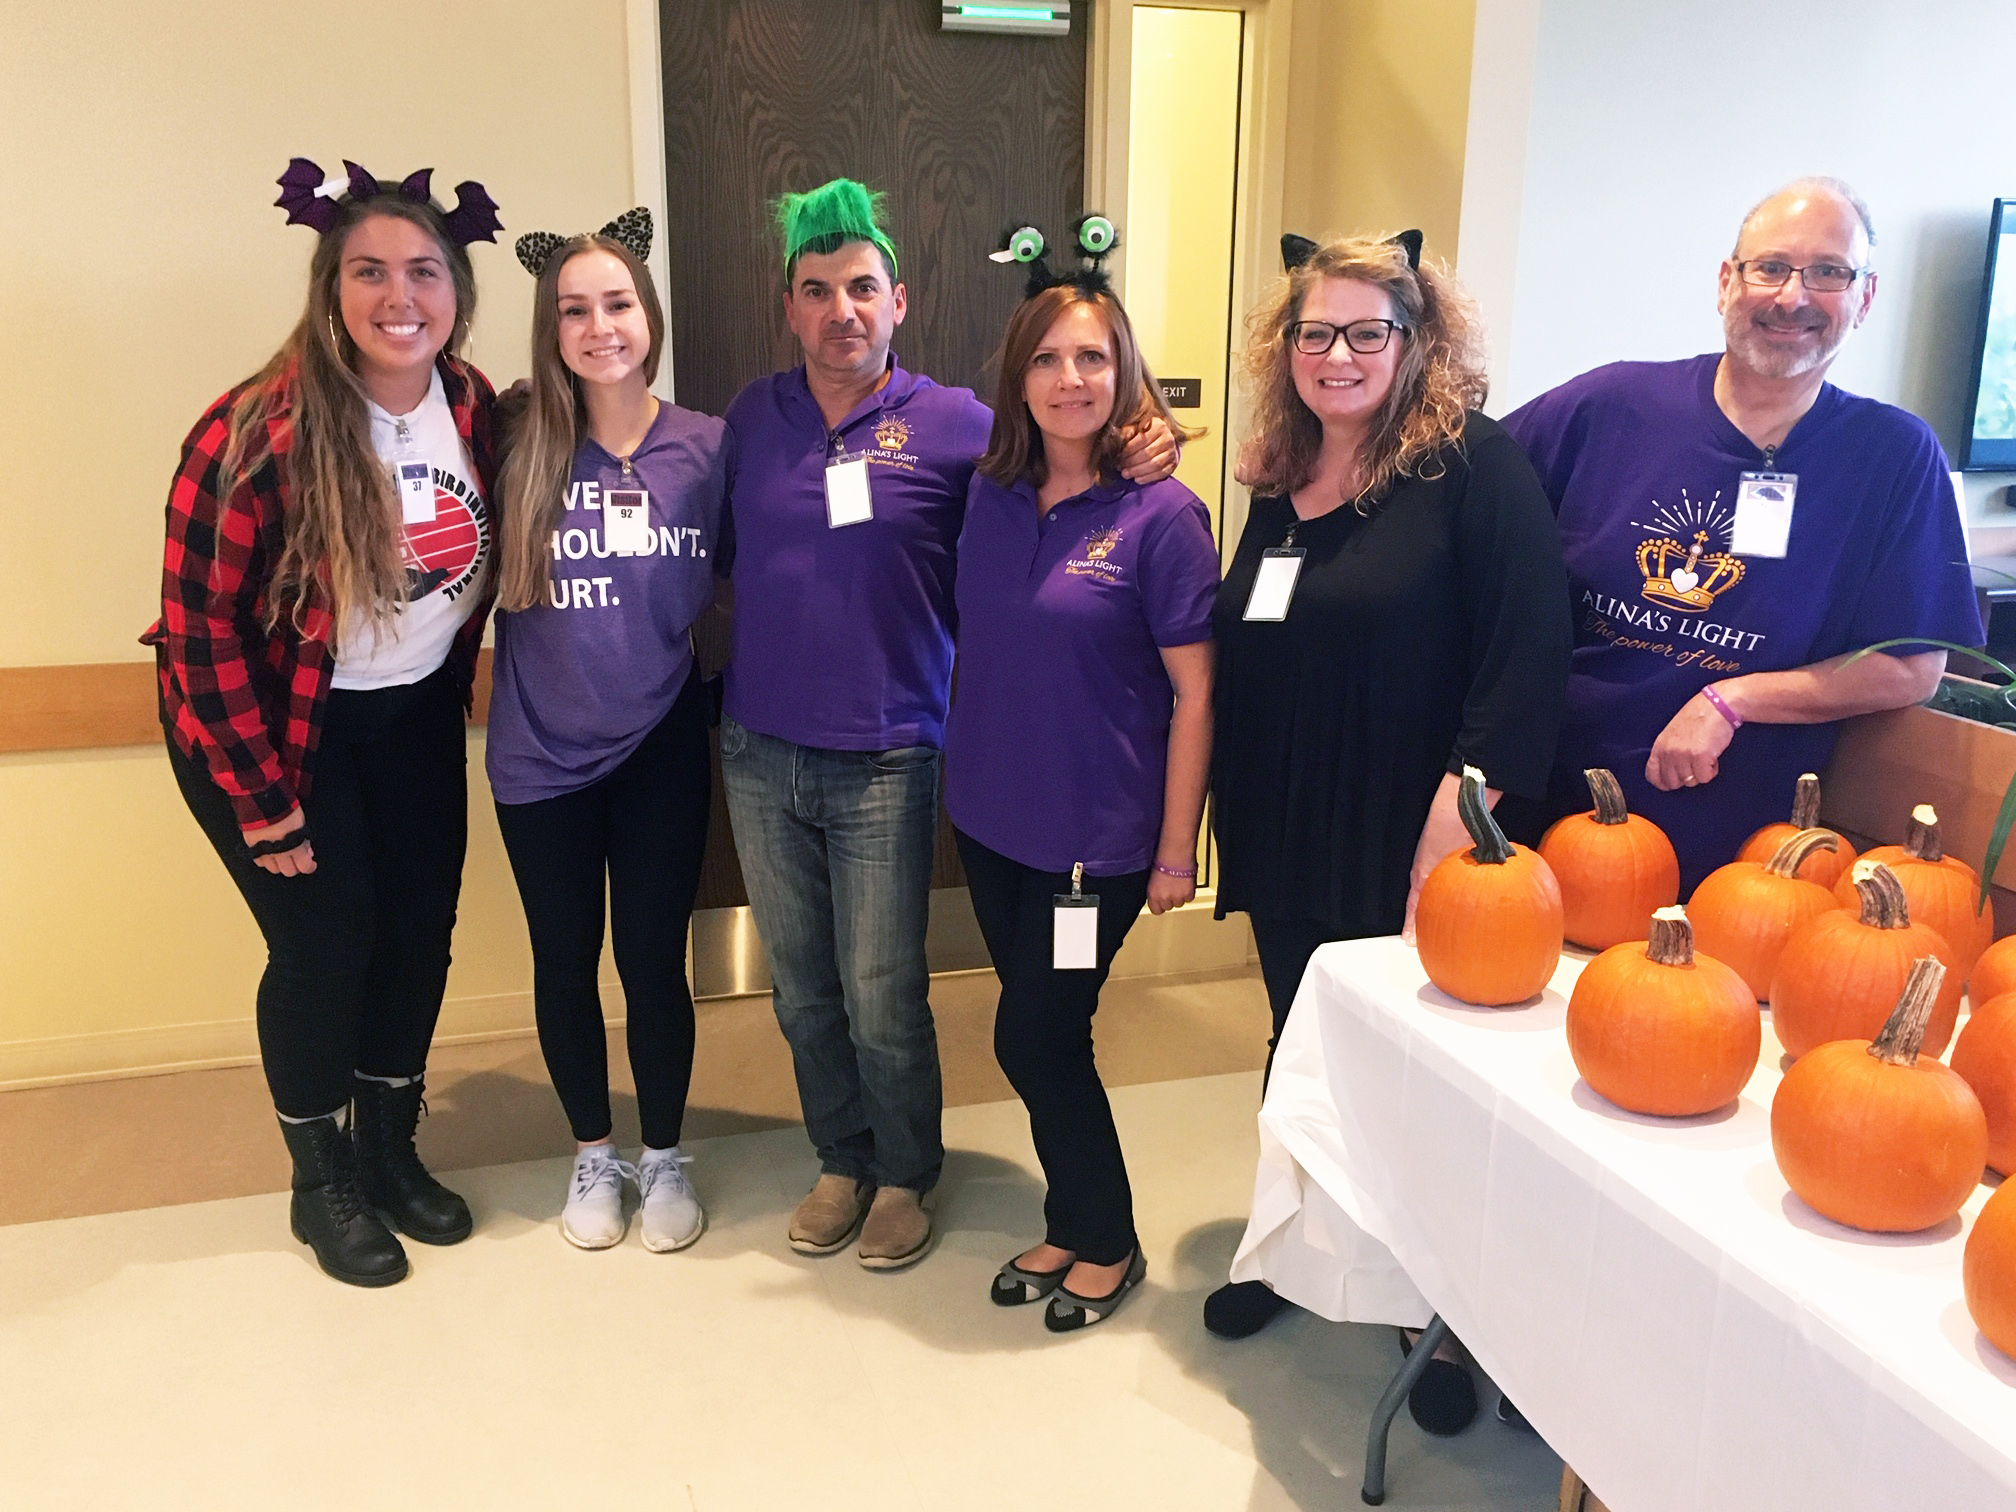 Carving Pumpkins at the Women's Shelter